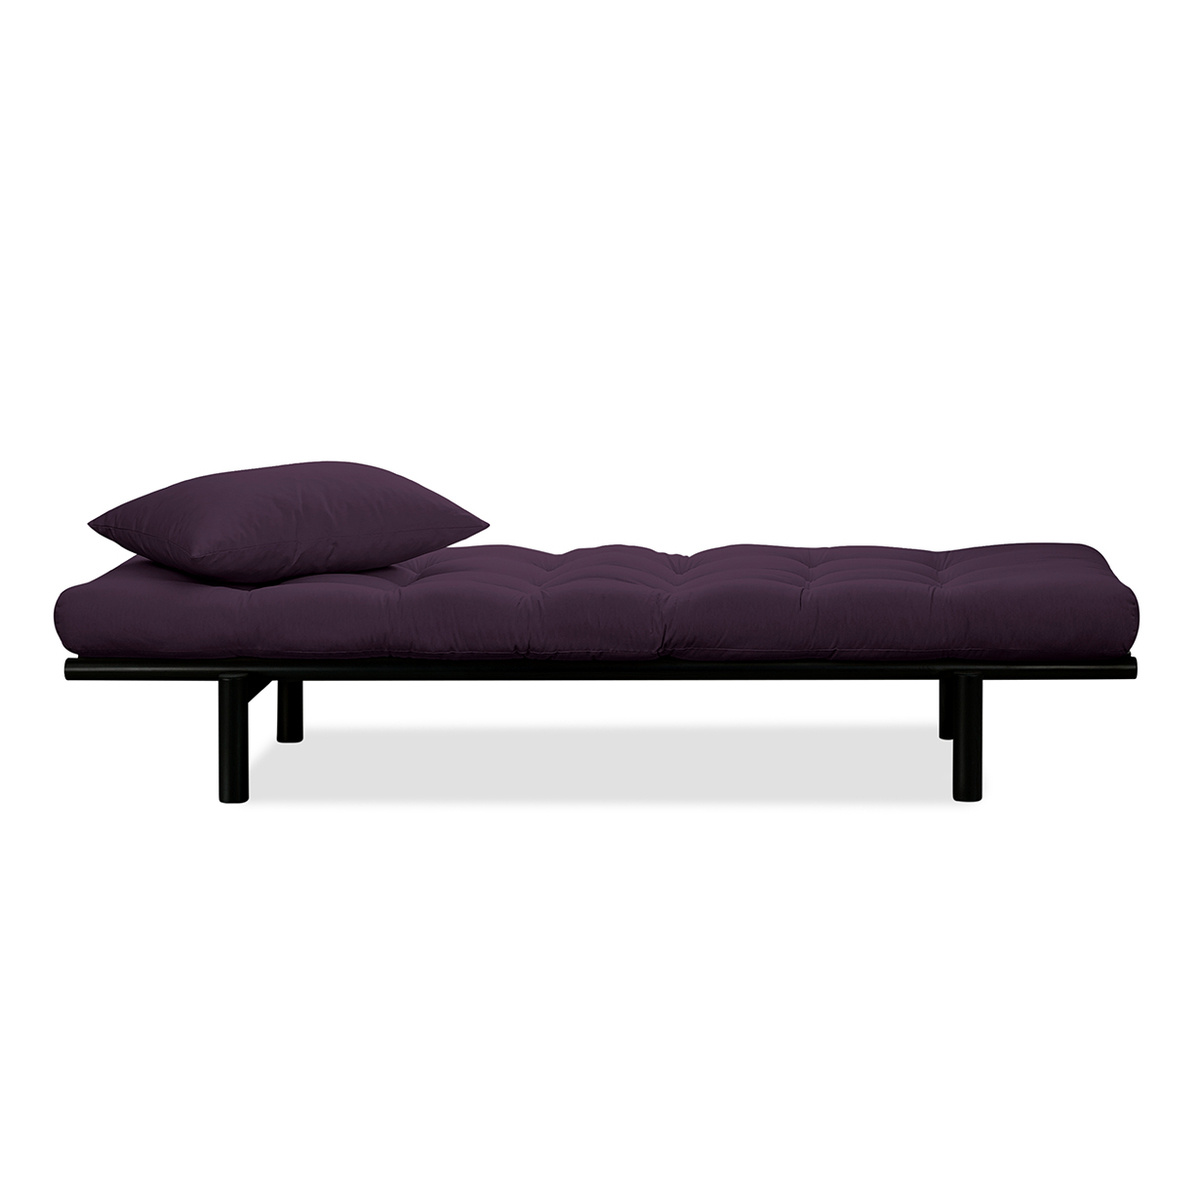 Canapea fixa Pace Day-Bed Black II